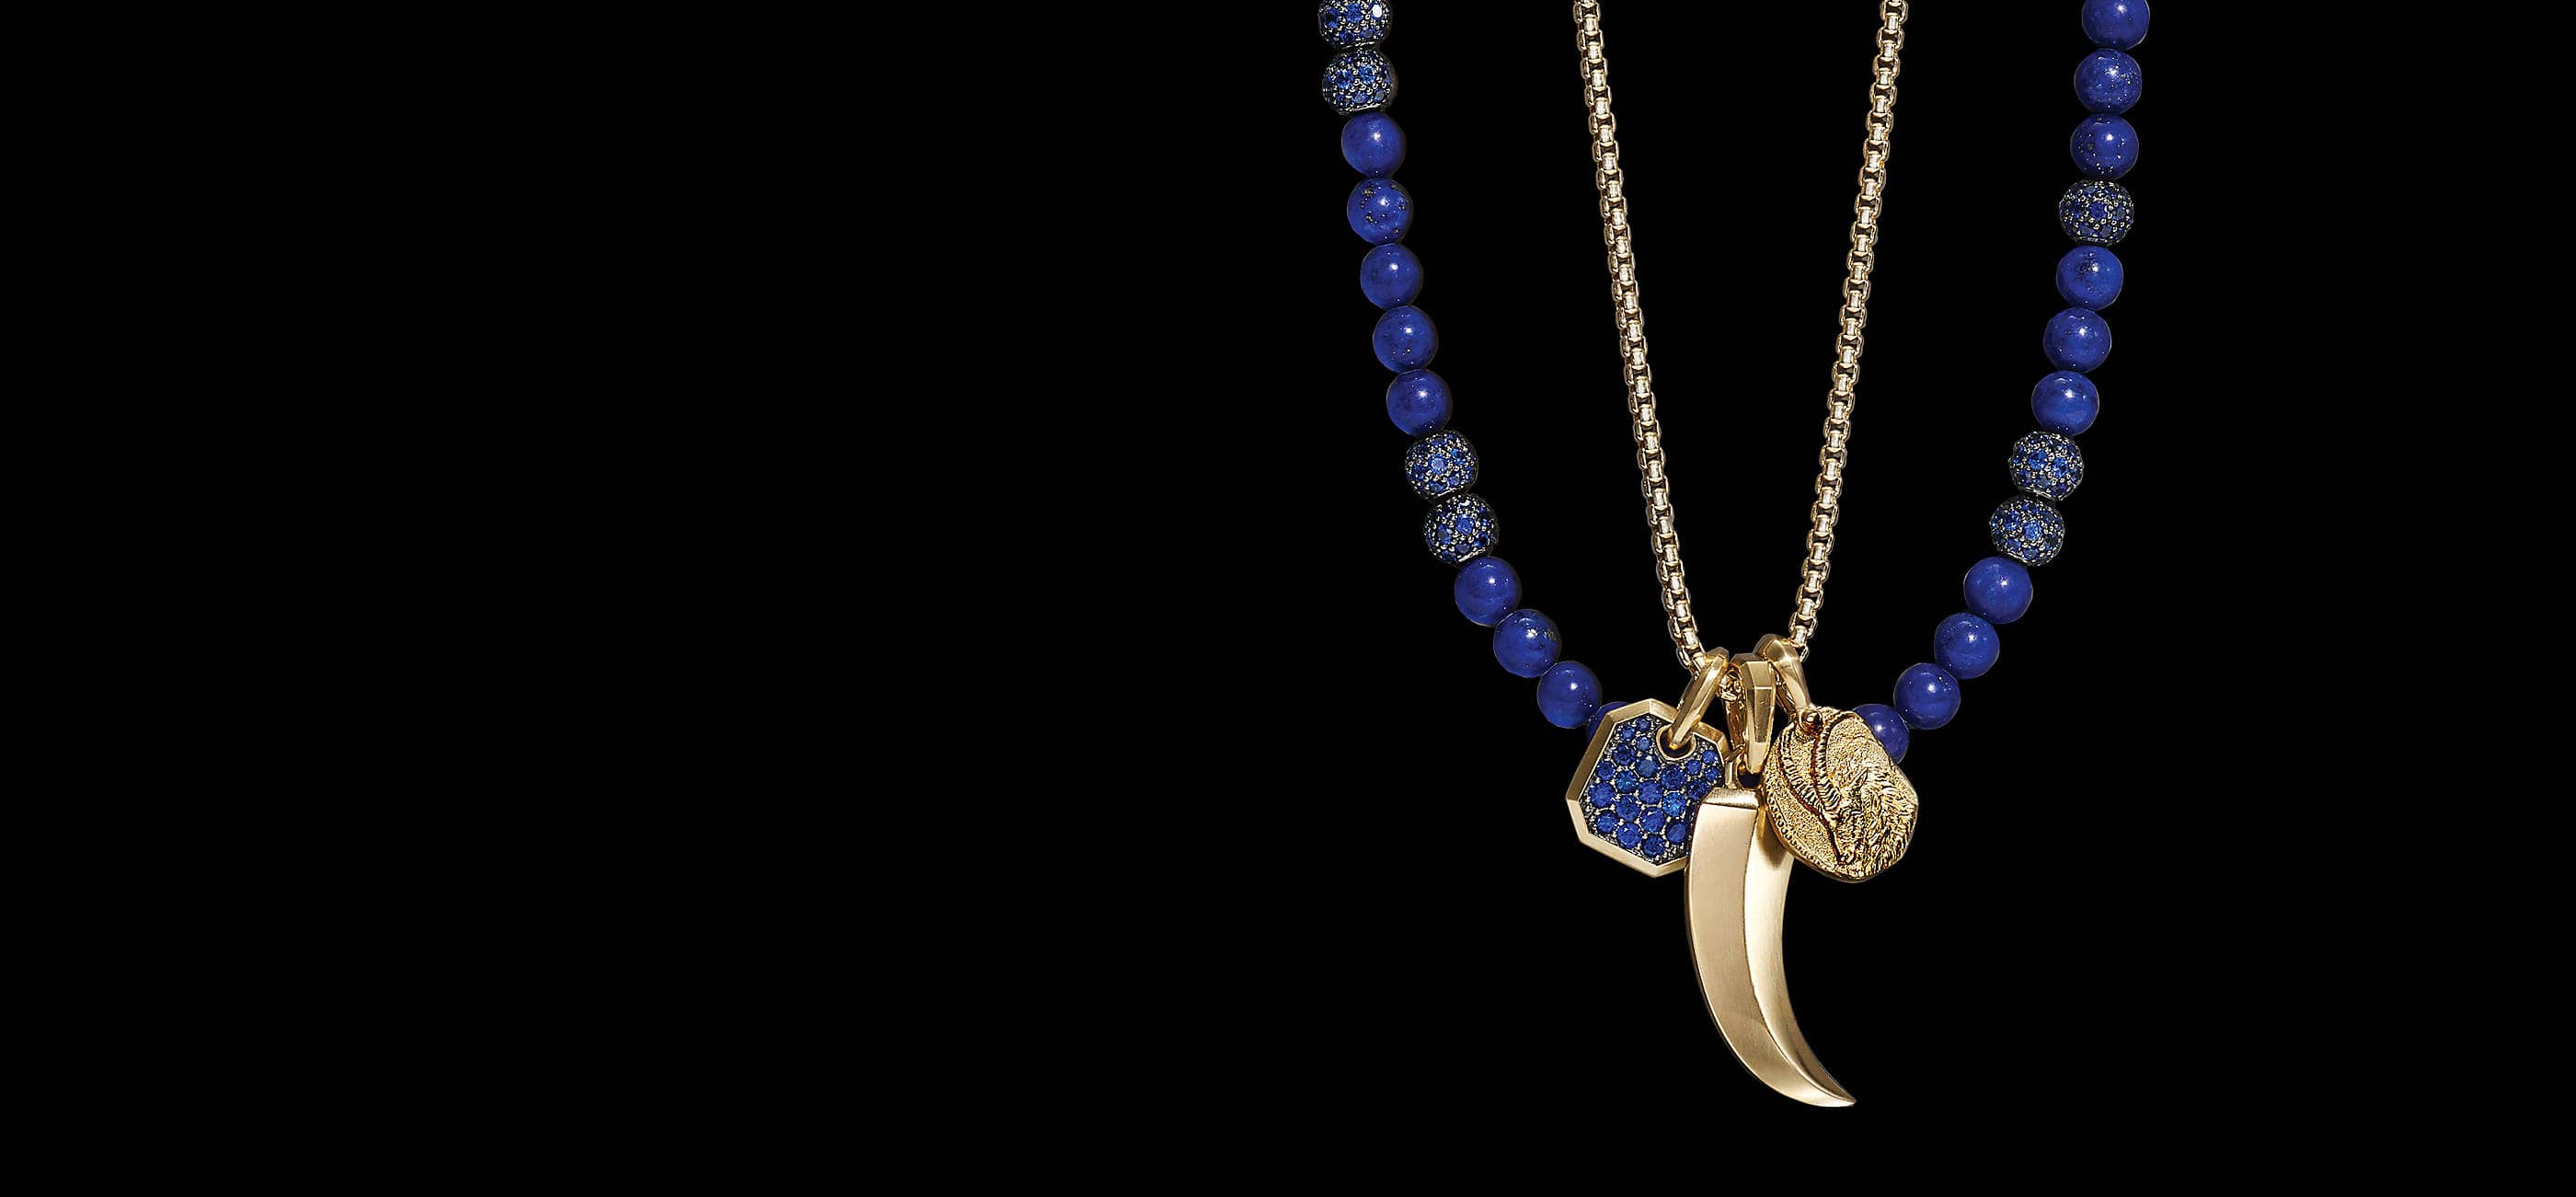 An image shows shows a David Yurman men's beaded necklace and box chain strung with a David Yurman zodiac, horn and hexagonal amulet.The beaded necklace is crafted from lapis lazuli beads with blue sapphire accents. The box chain and two amulets are crafted from 18K yellow gold.